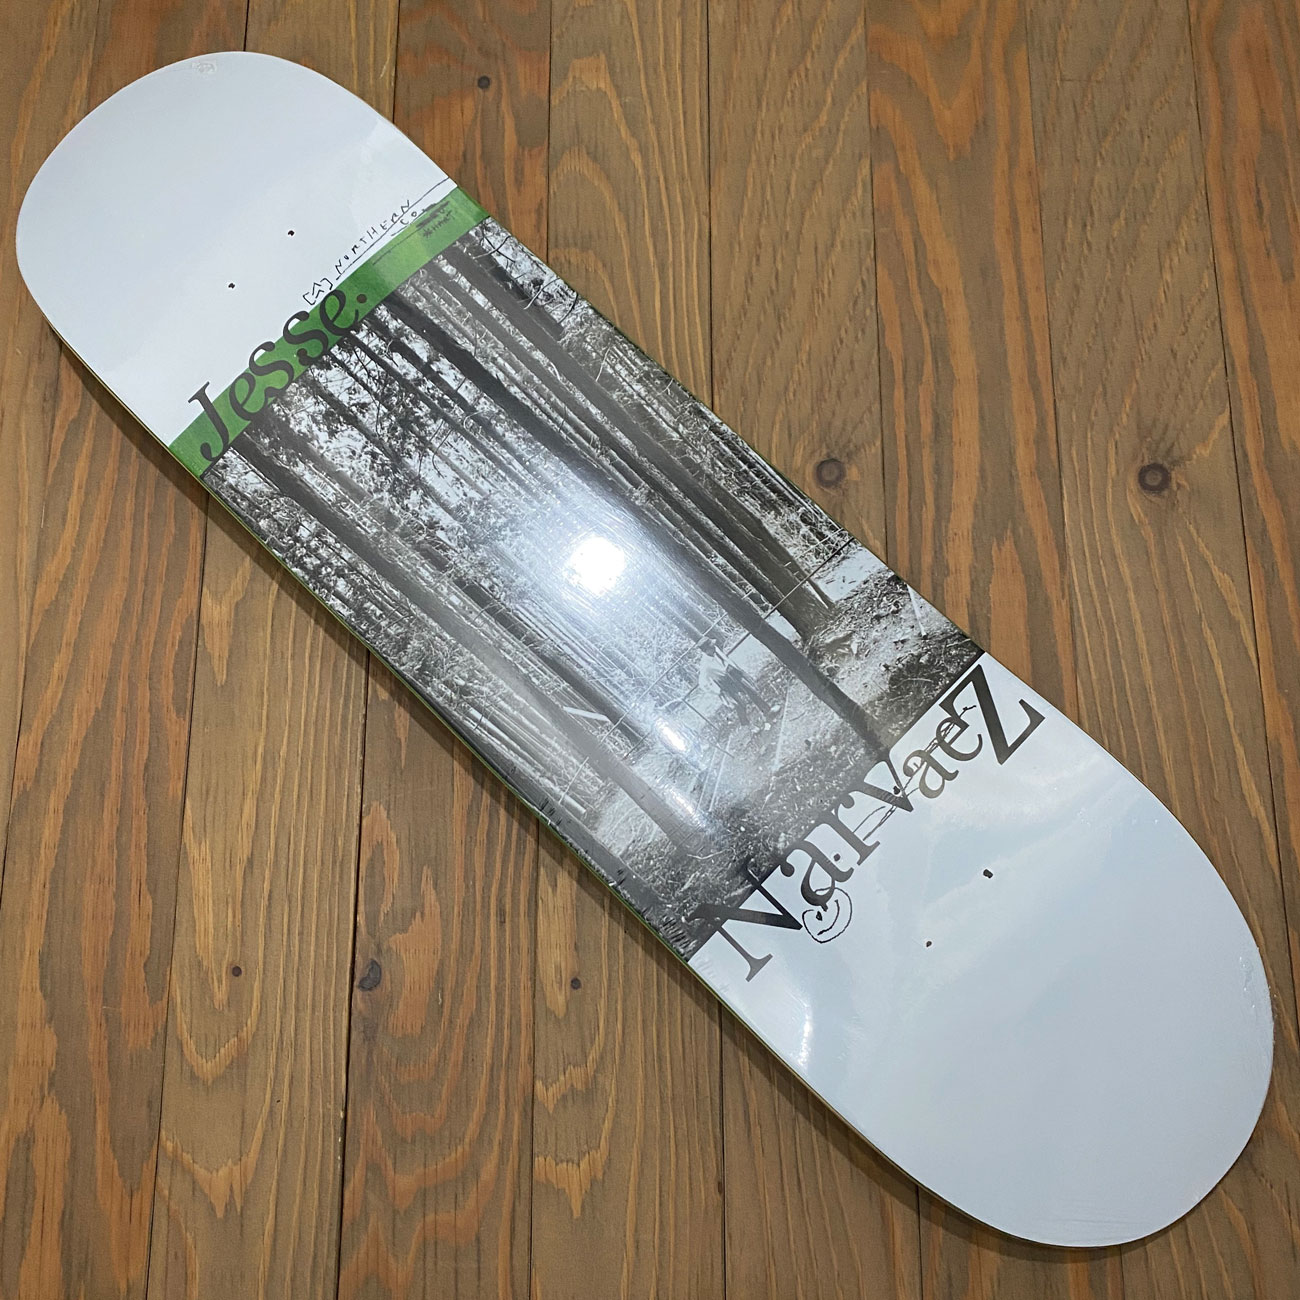 NORTHERN CO JESSE NARVAEZ DECK 8.0inch